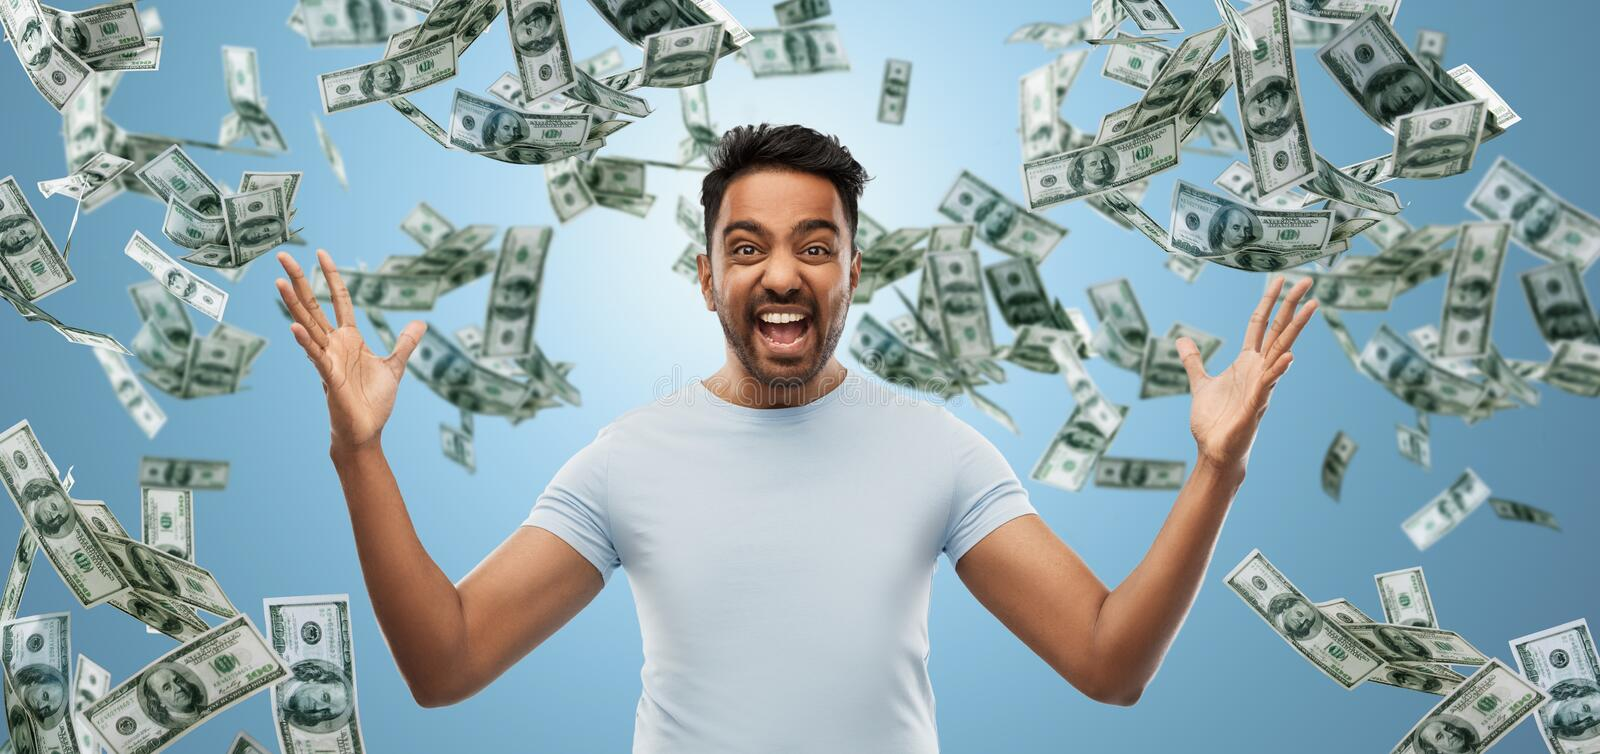 Indian man celebrating triumph over money falling. Success, wealth and finances concept - happy young indian man celebrating triumph over blue and cash money stock image